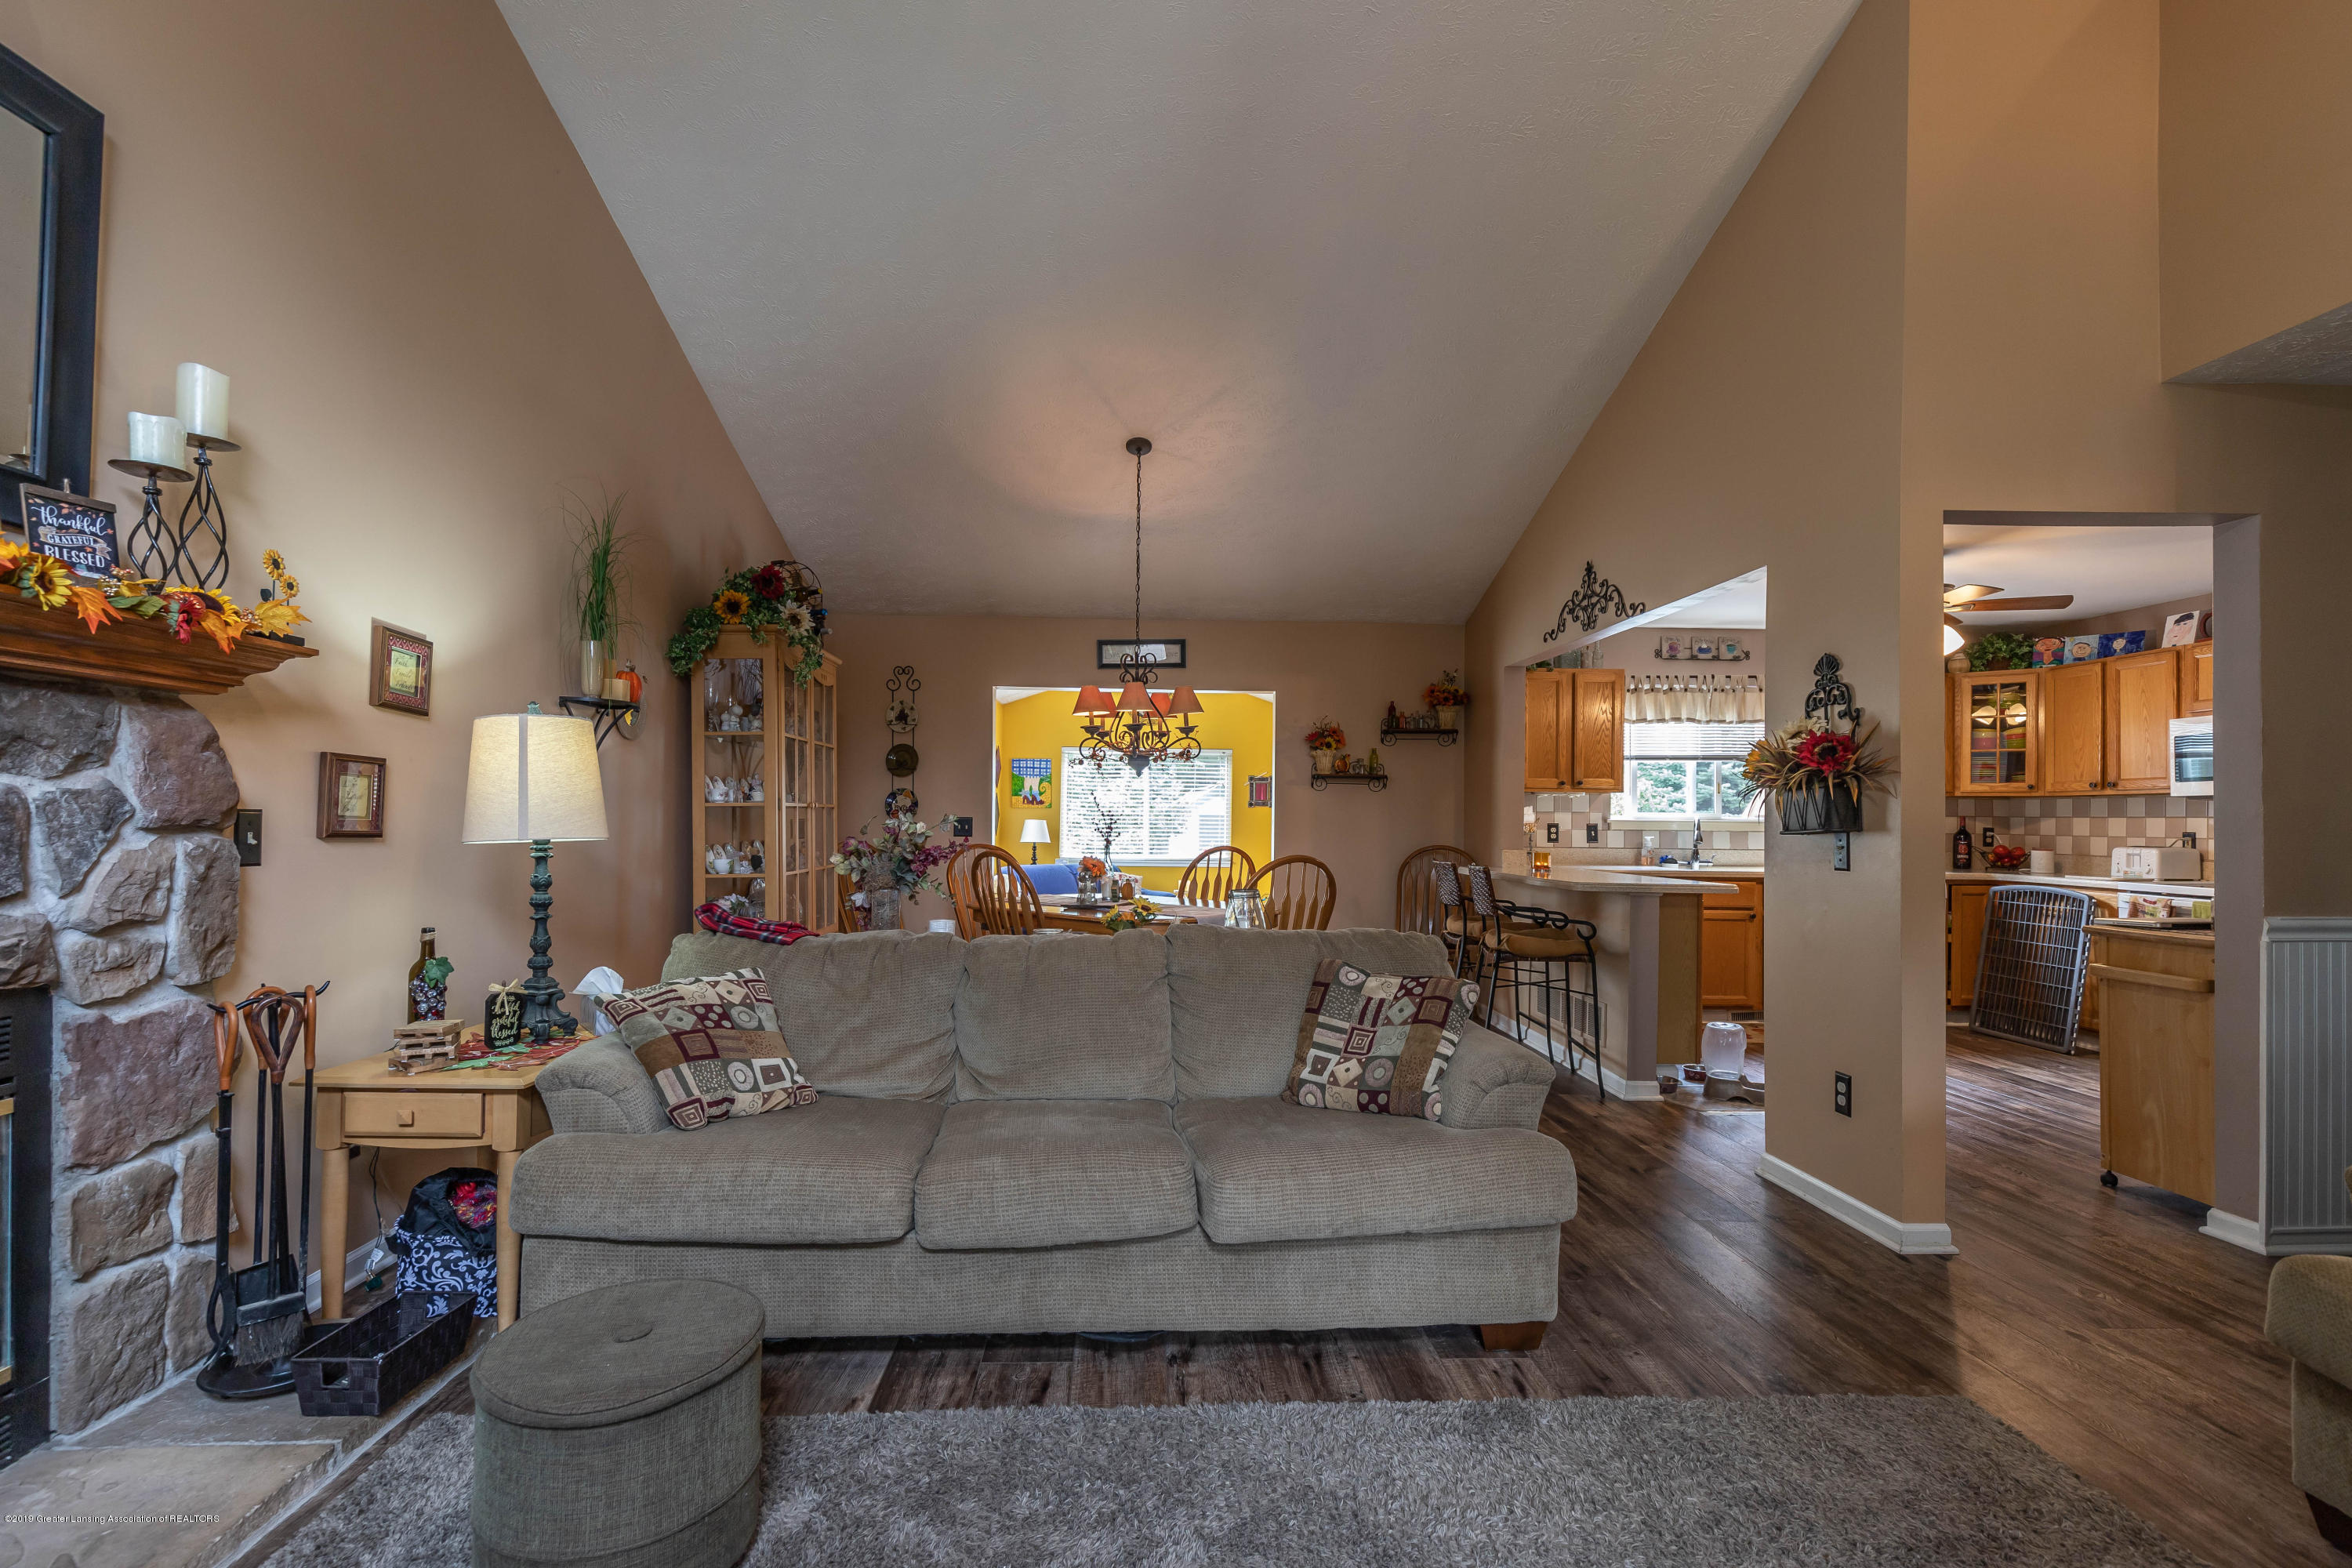 501 Winding River Dr 56 - windingliving3 (1 of 1) - 6